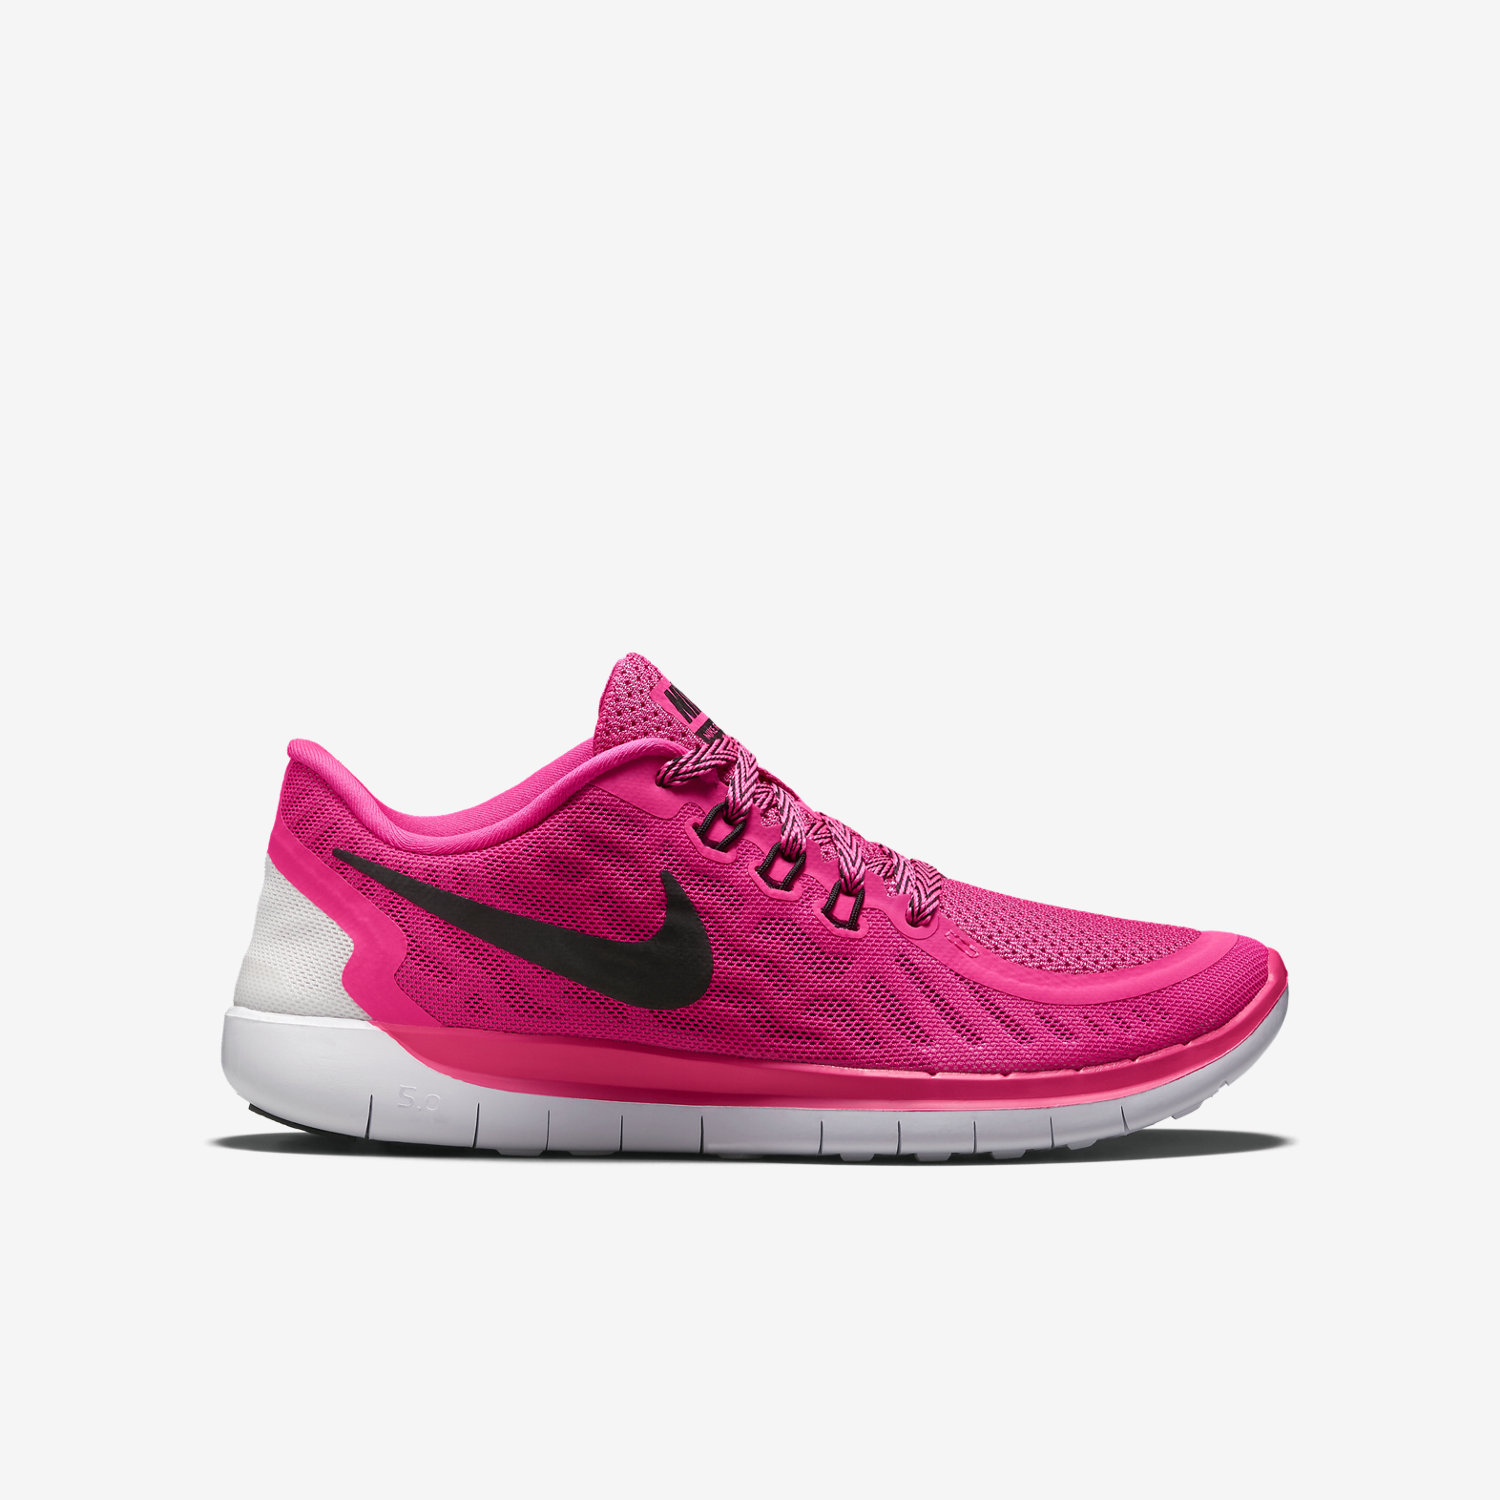 nike free 3 0 v4 damen grau pink. Black Bedroom Furniture Sets. Home Design Ideas